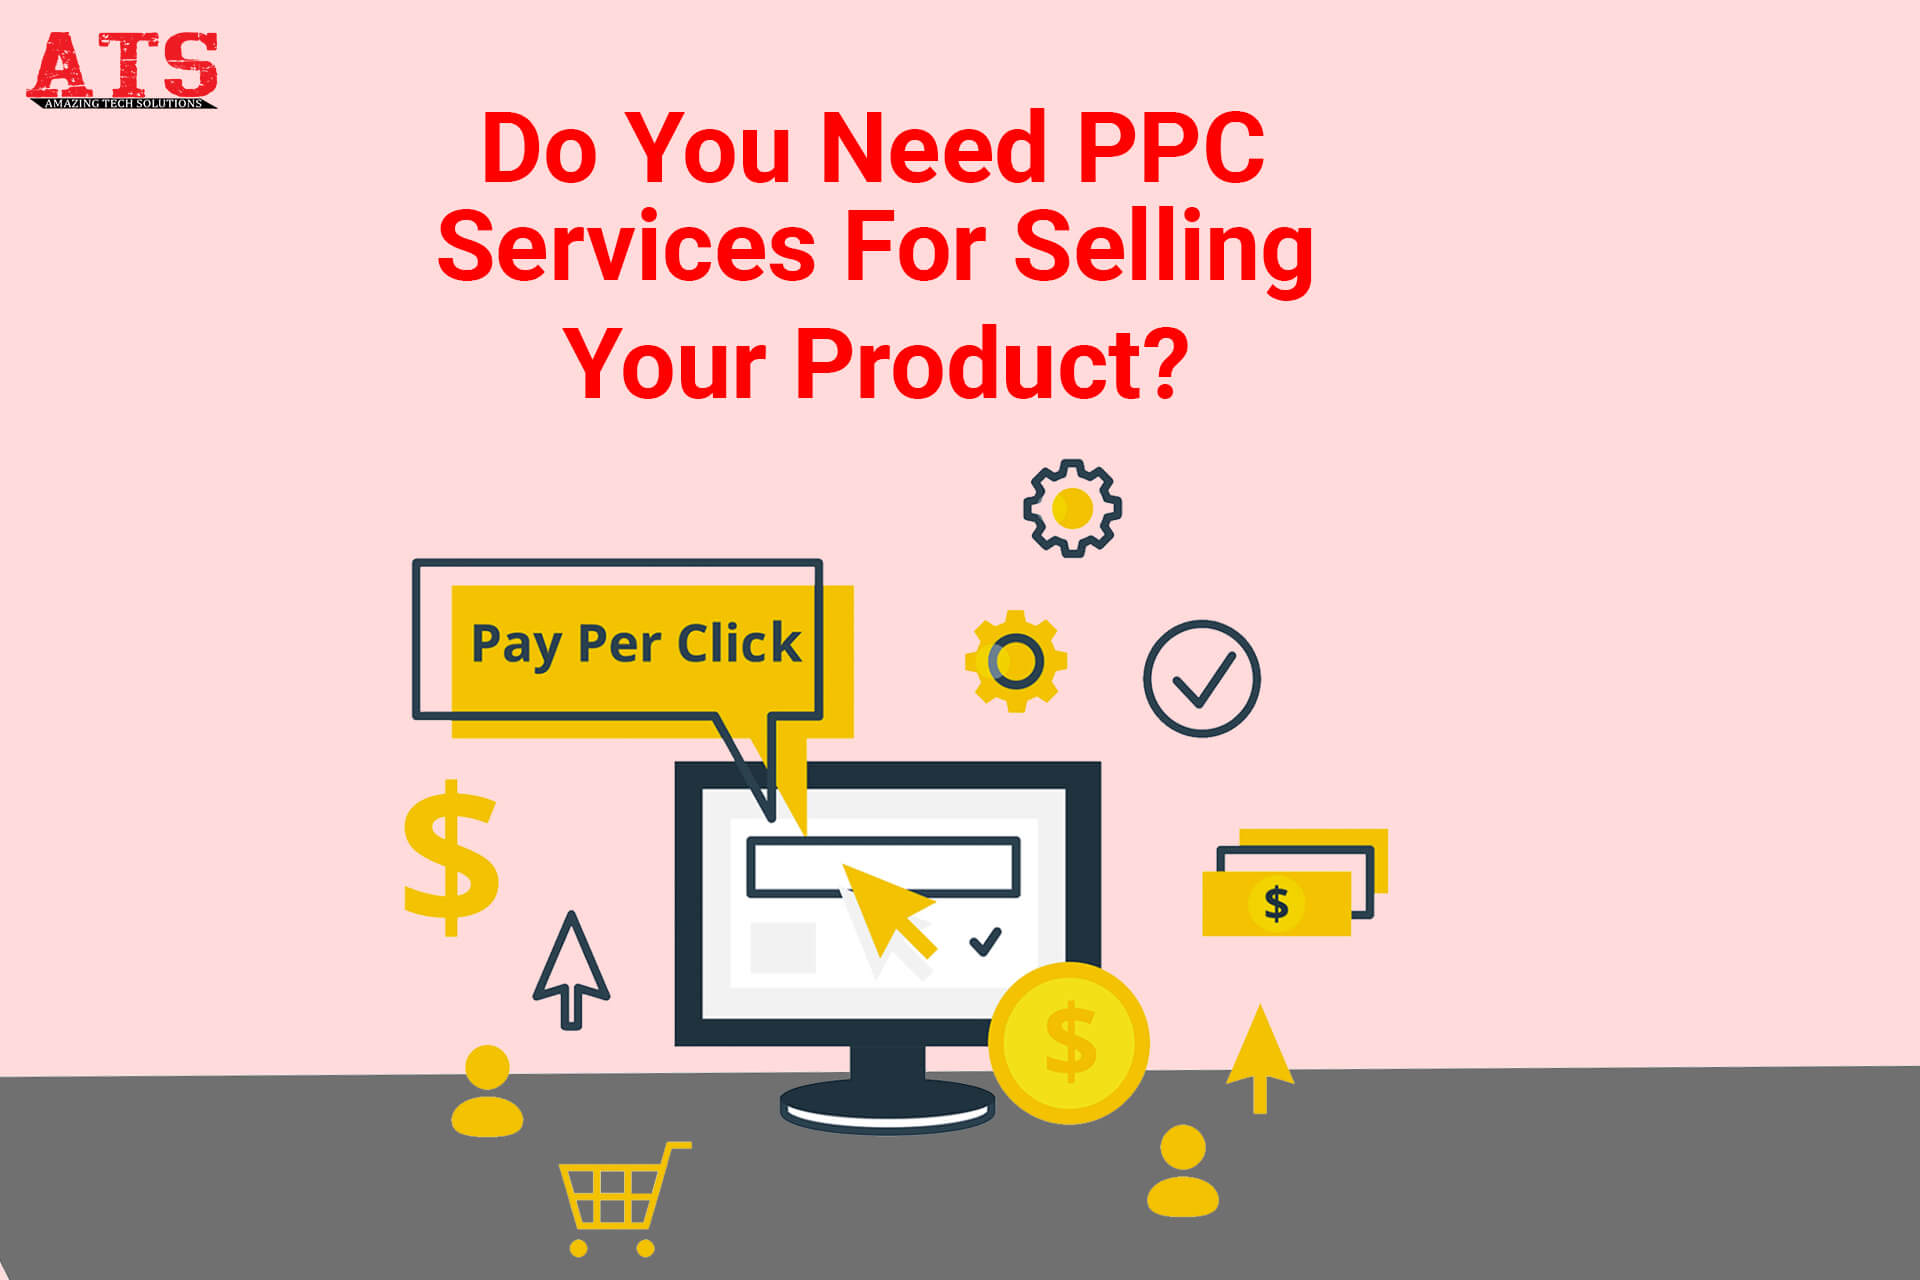 Do You Need PPC Services For Selling Your Product?